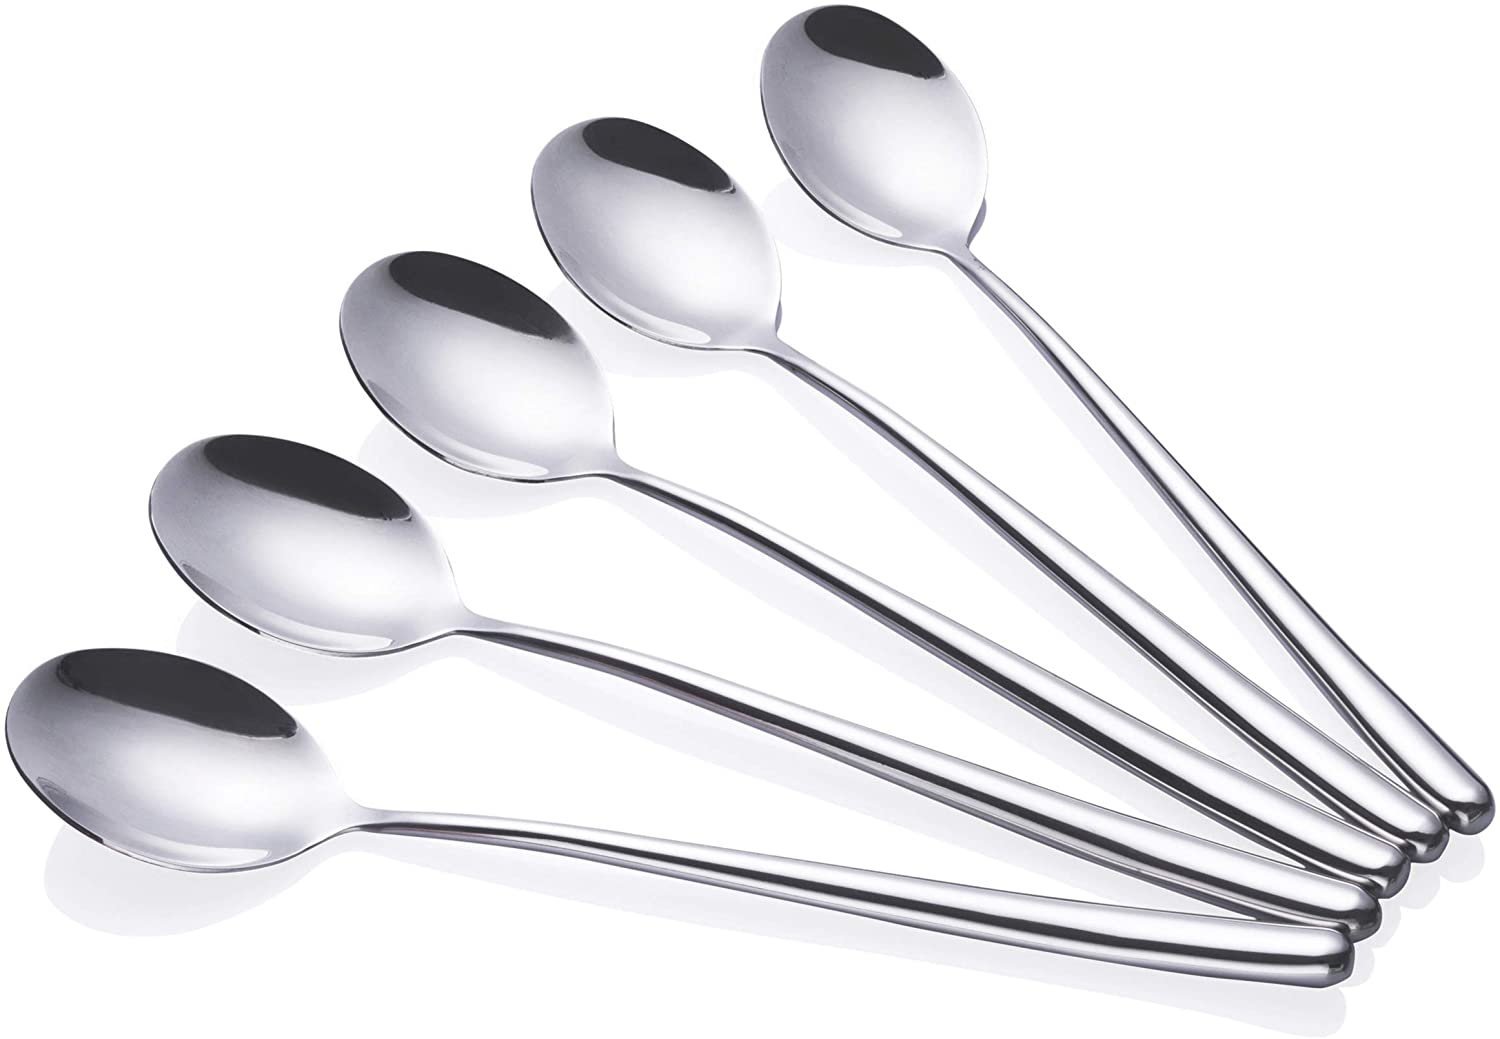 Silver Stainless Steel Chinese Large Soup Spoon Kitchen Ramen Spoons Flatware